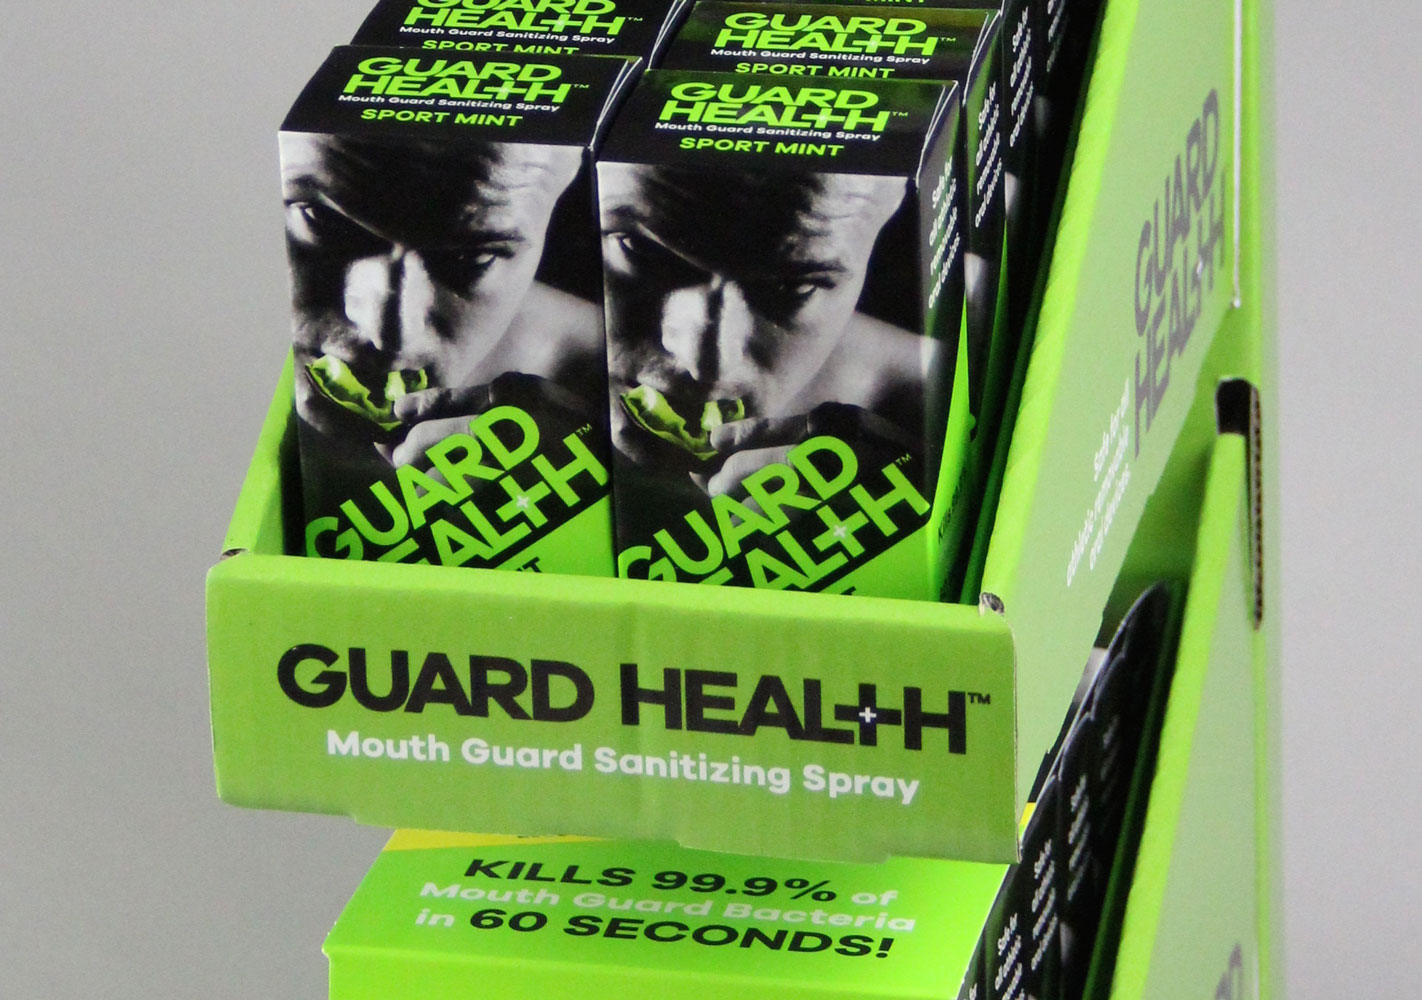 Guard Health Packaging Display